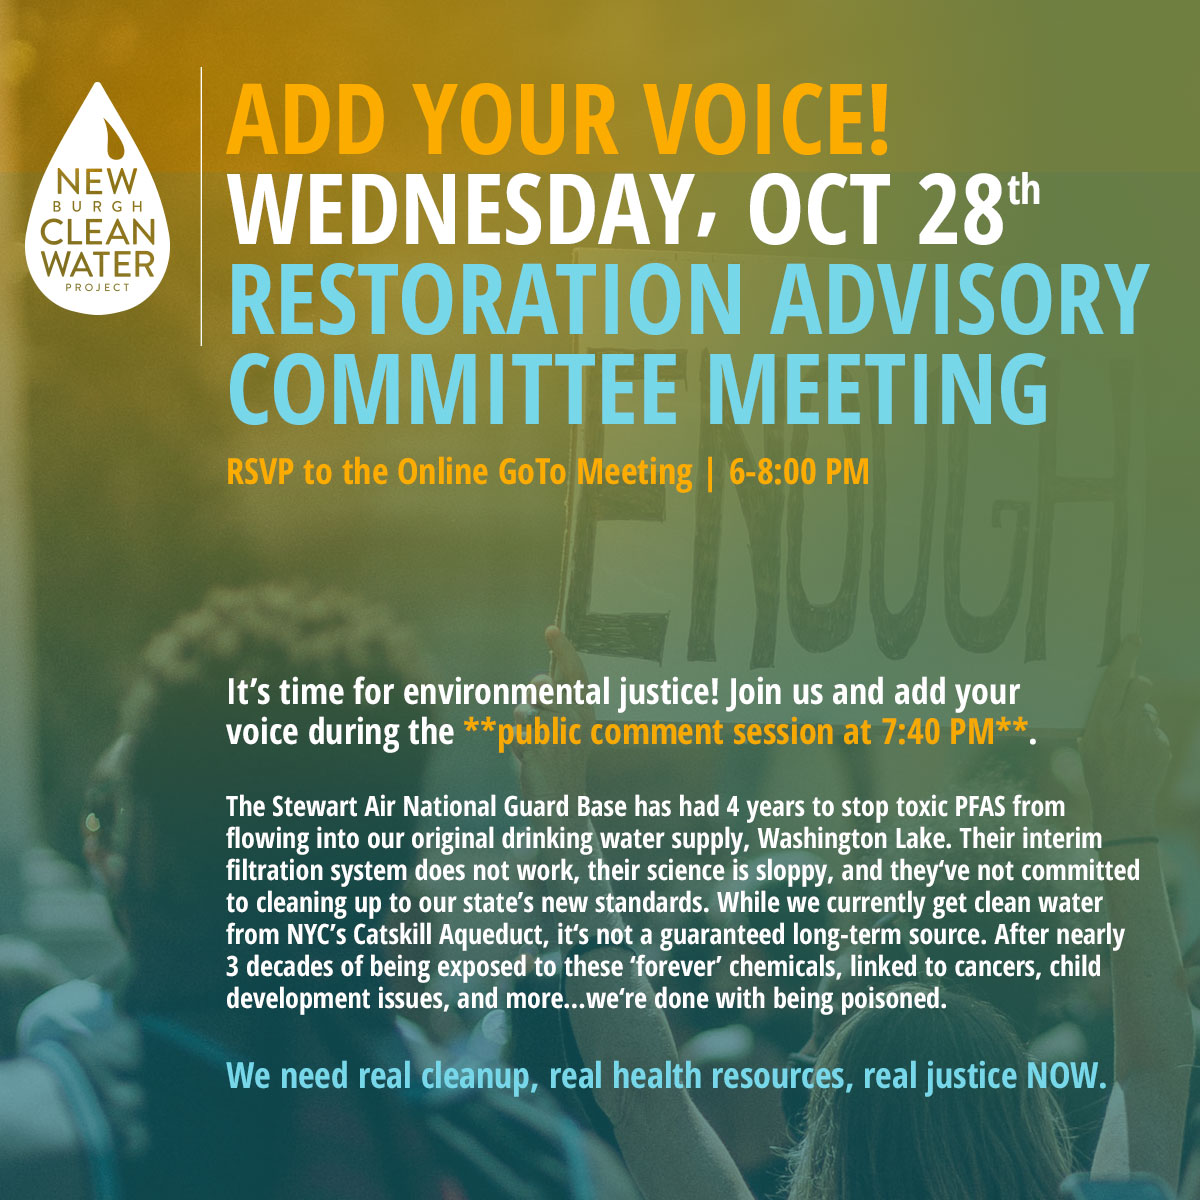 NCWP_Restoration_Advisory_Committee_10.28.20_Add_Your_Voice for Environmental Justice